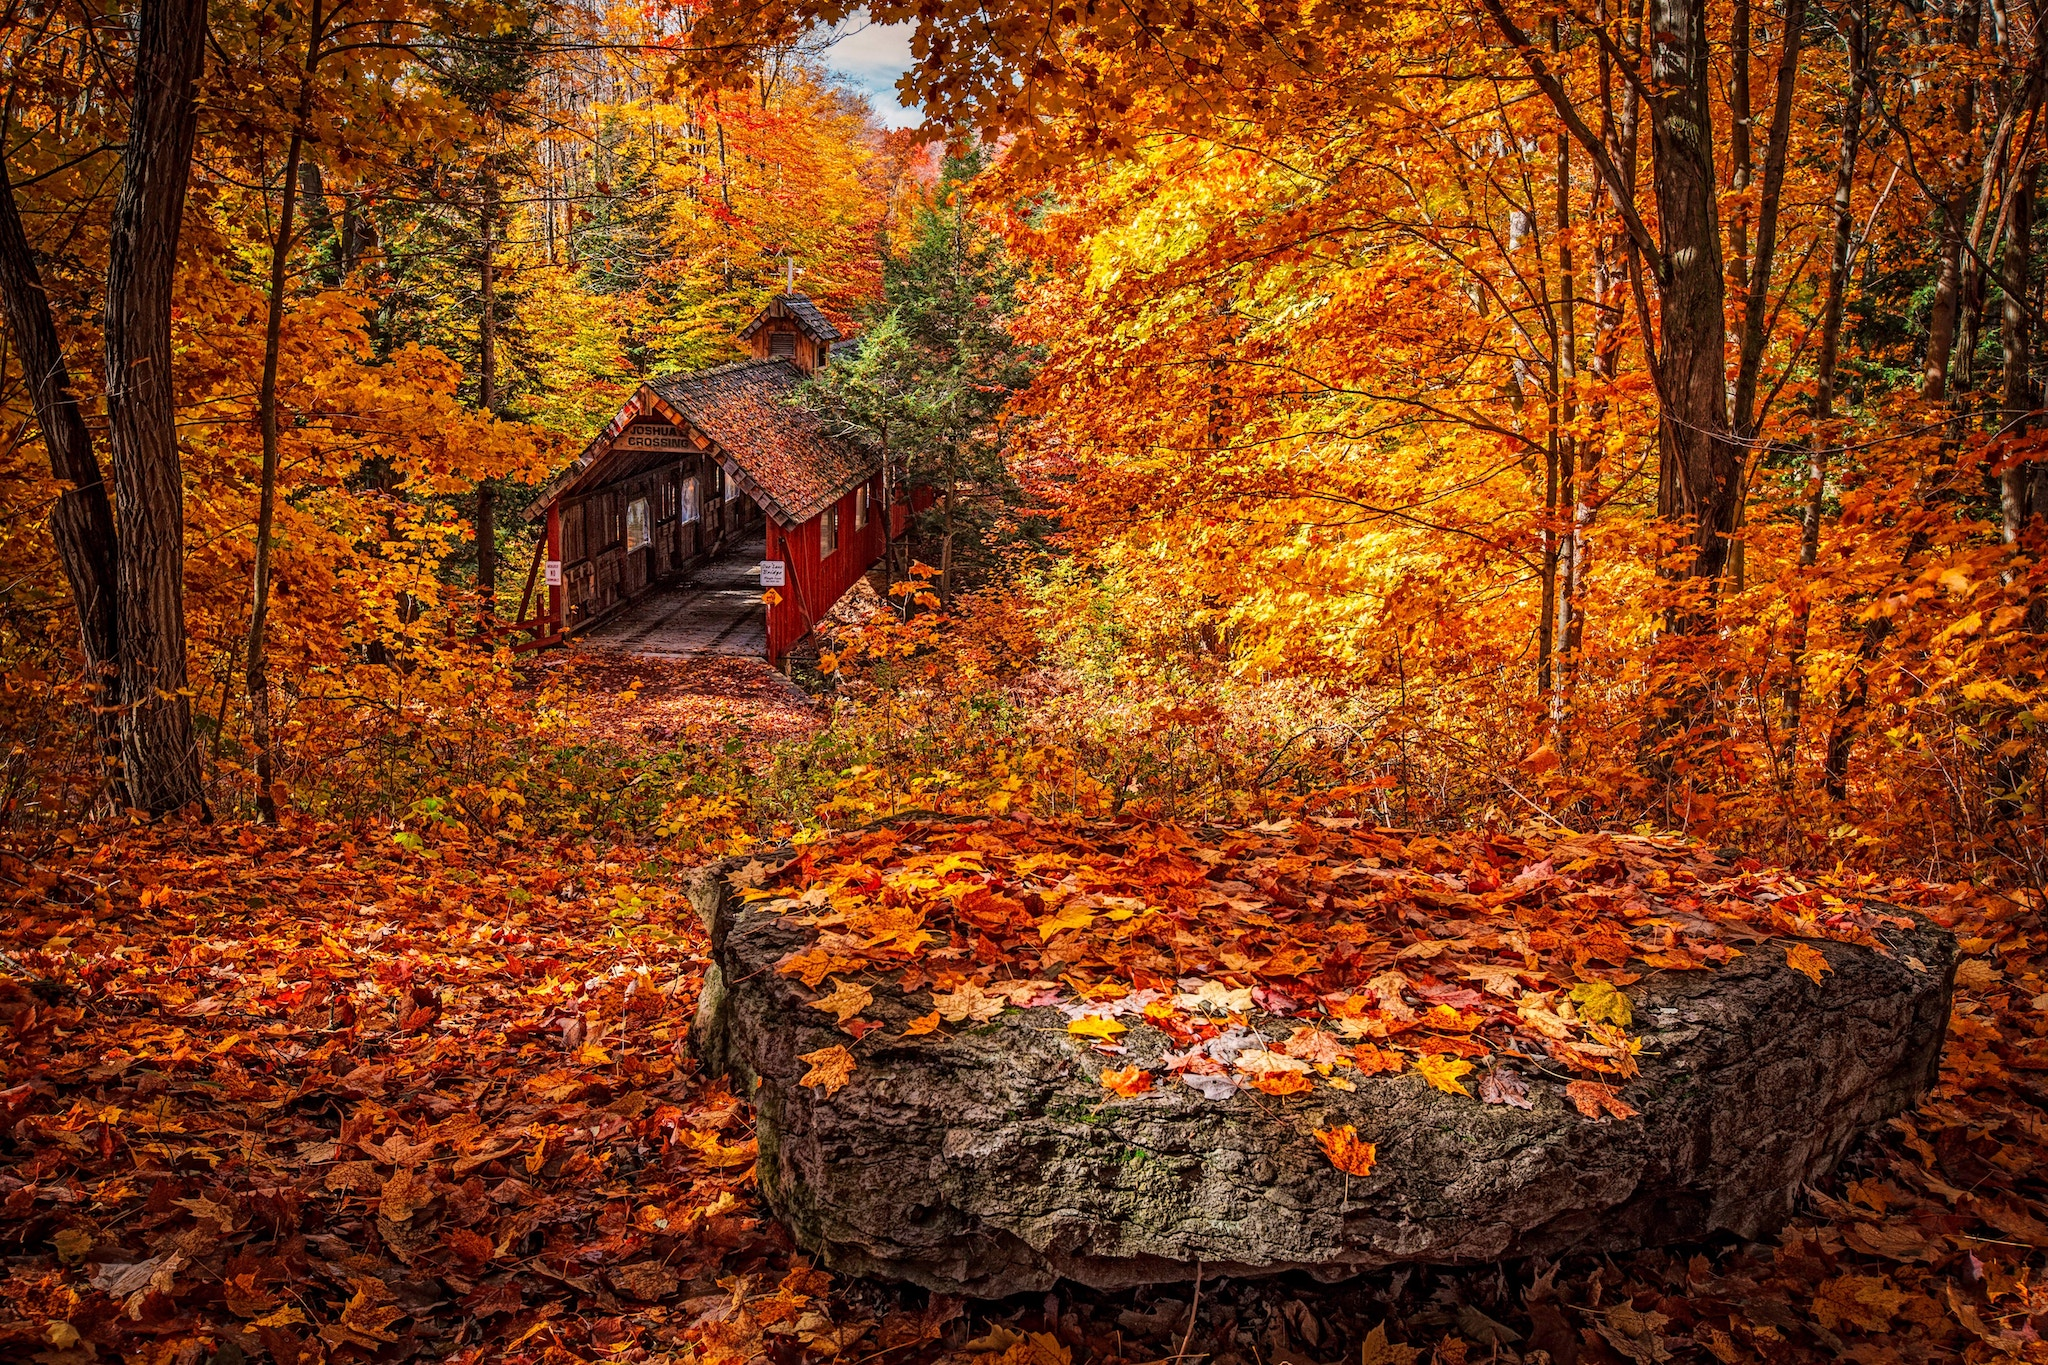 Falling Leaves Wallpaper Screensavers Where To Go For The Best Autumn Foliage By Flight Centre